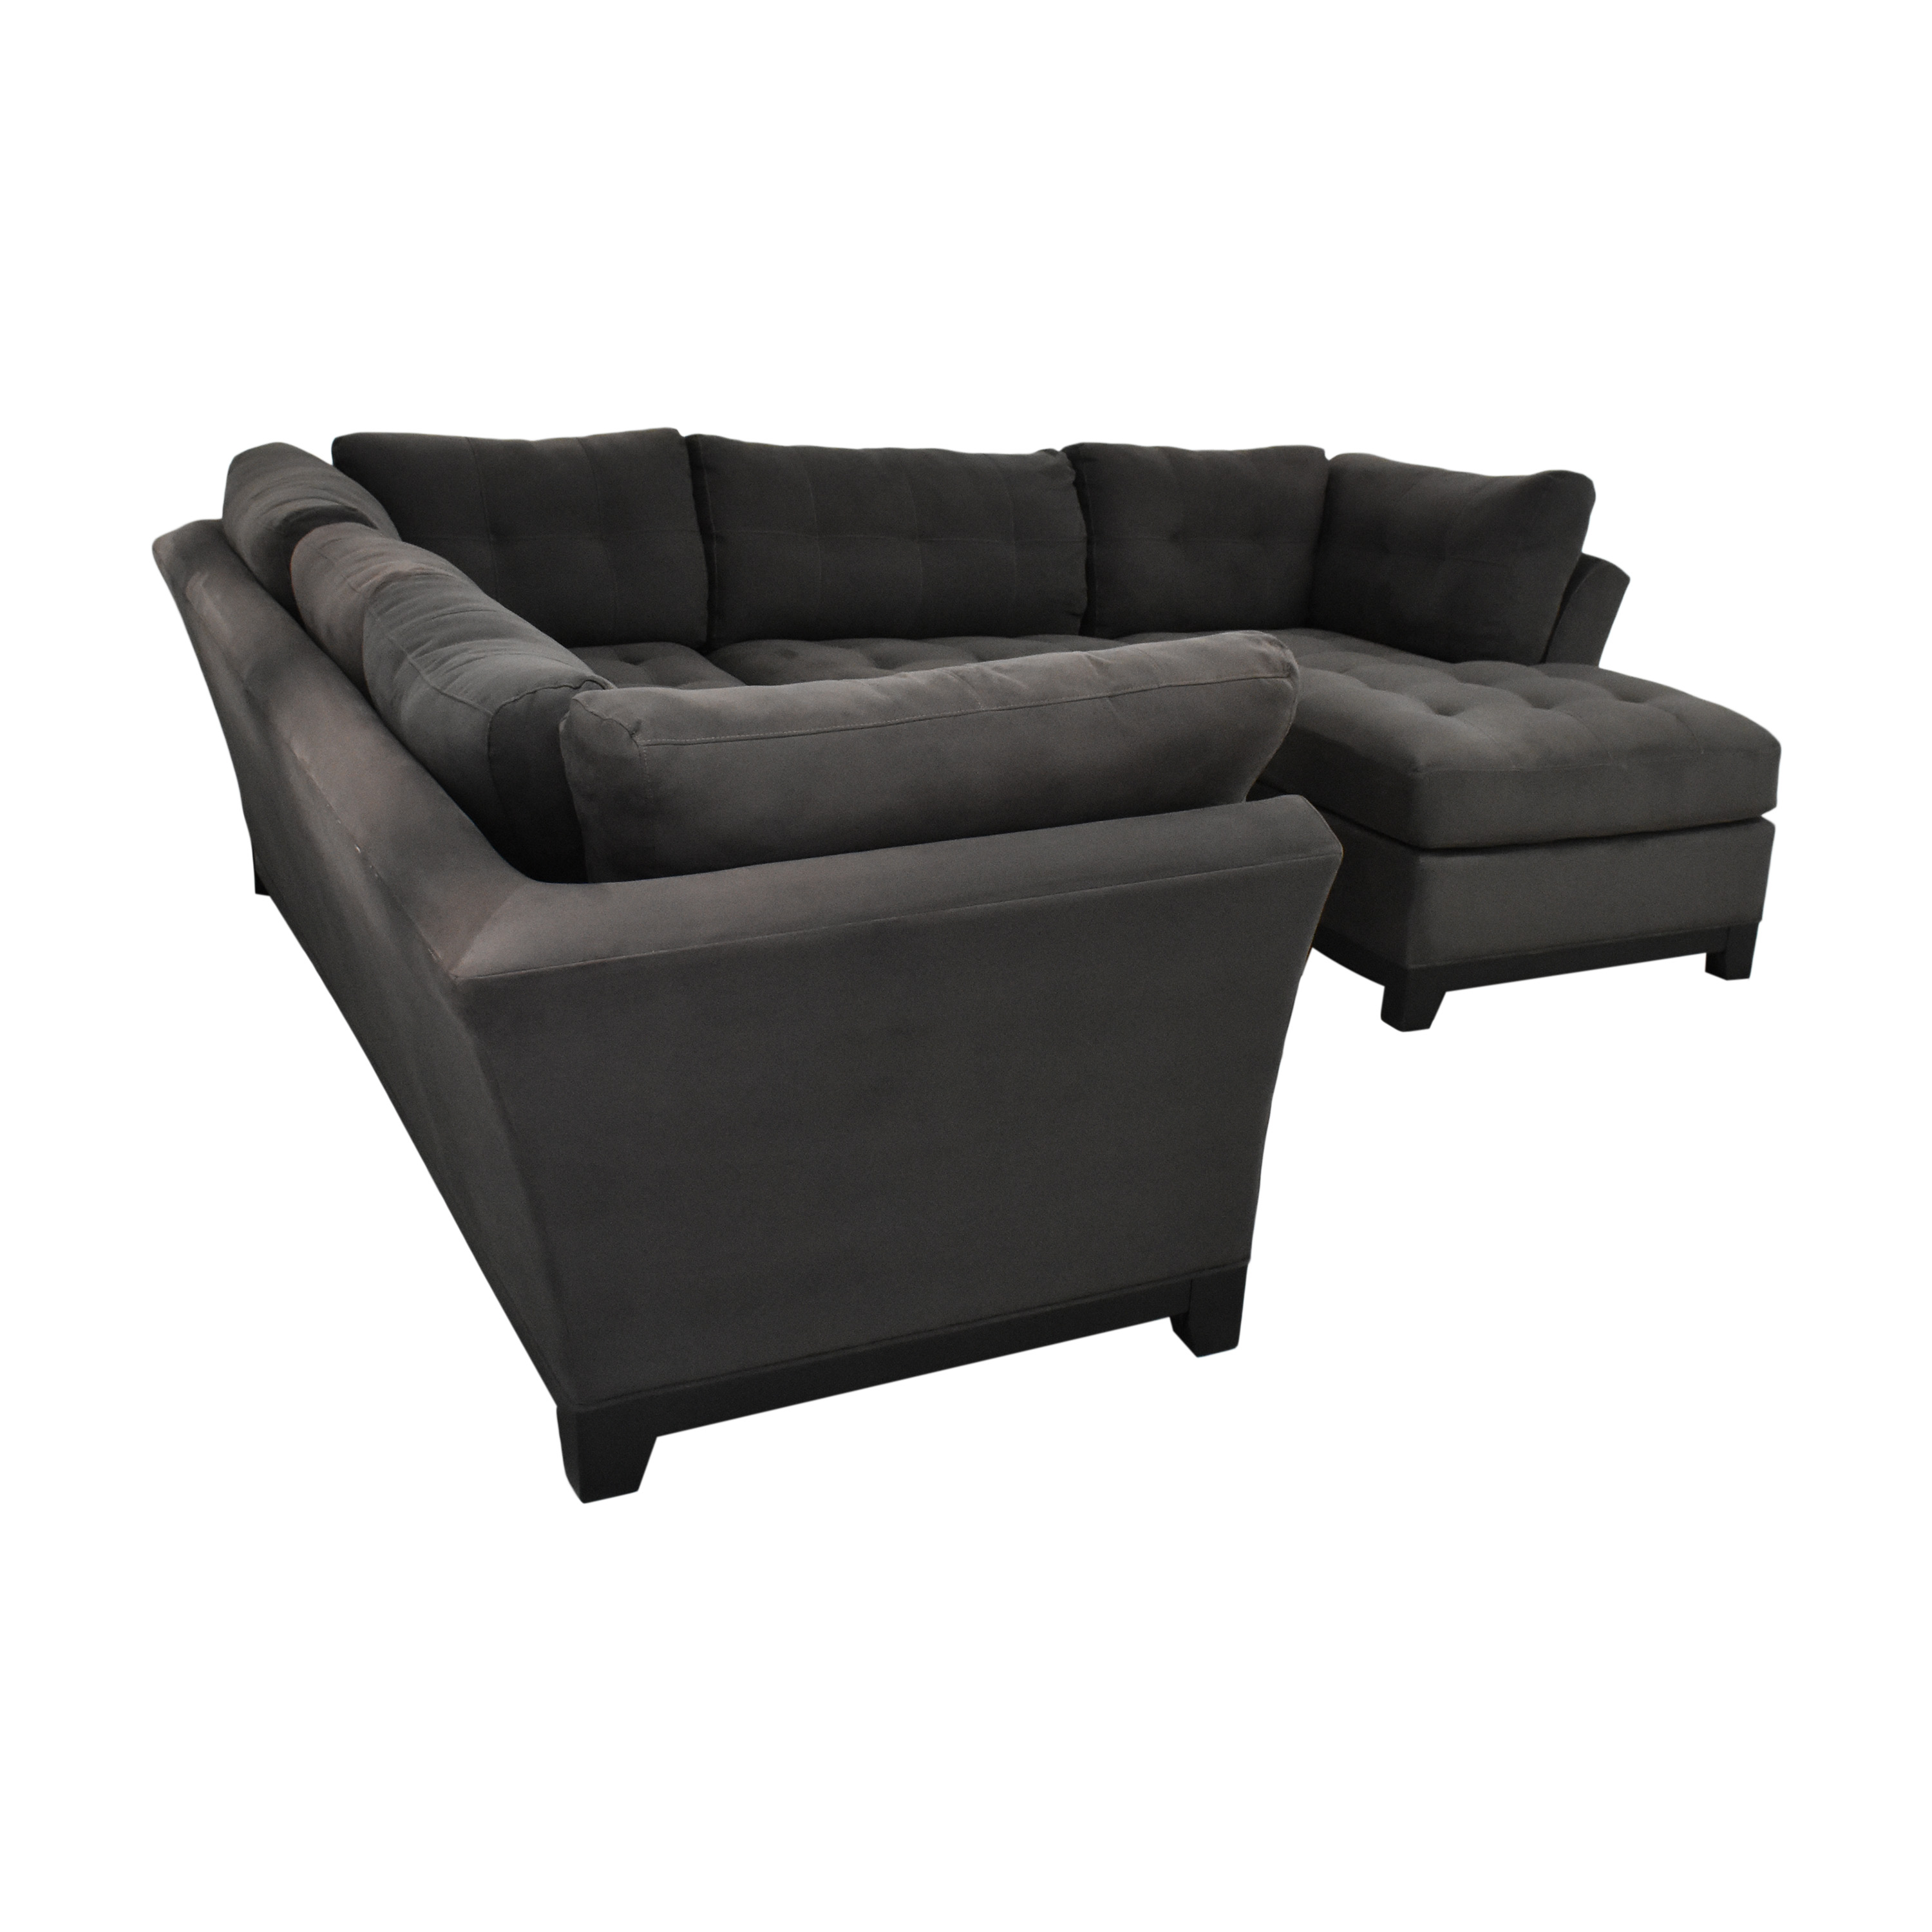 Cindy Crawford Home Cindy Crawford Home Metropolis Sectional Sofa Sectionals